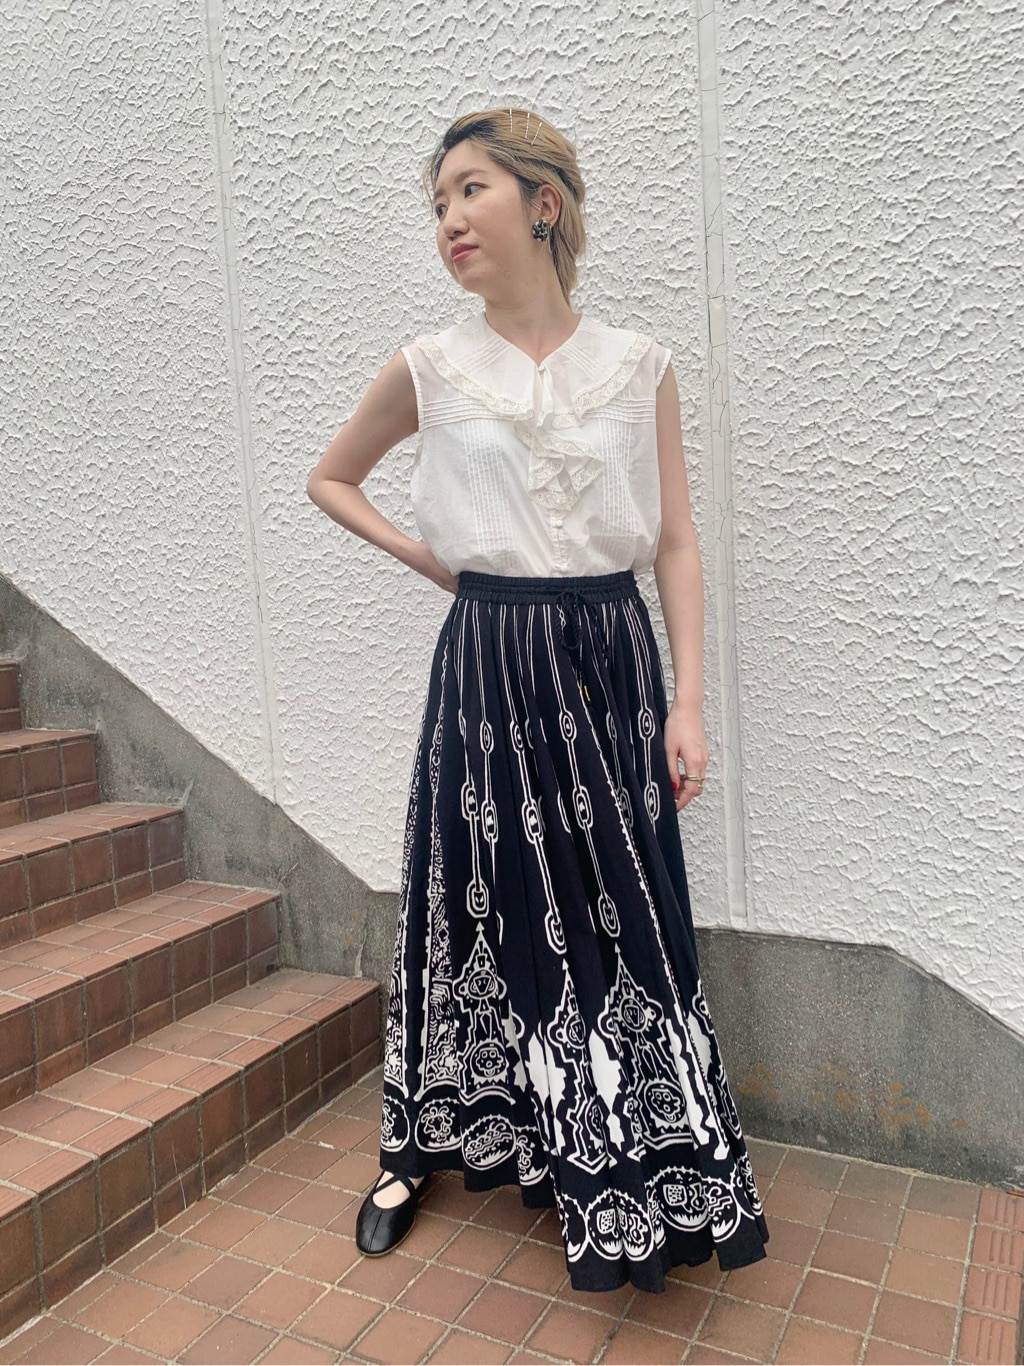 Dot and Stripes CHILD WOMAN ラフォーレ原宿 身長:160cm 2020.06.08